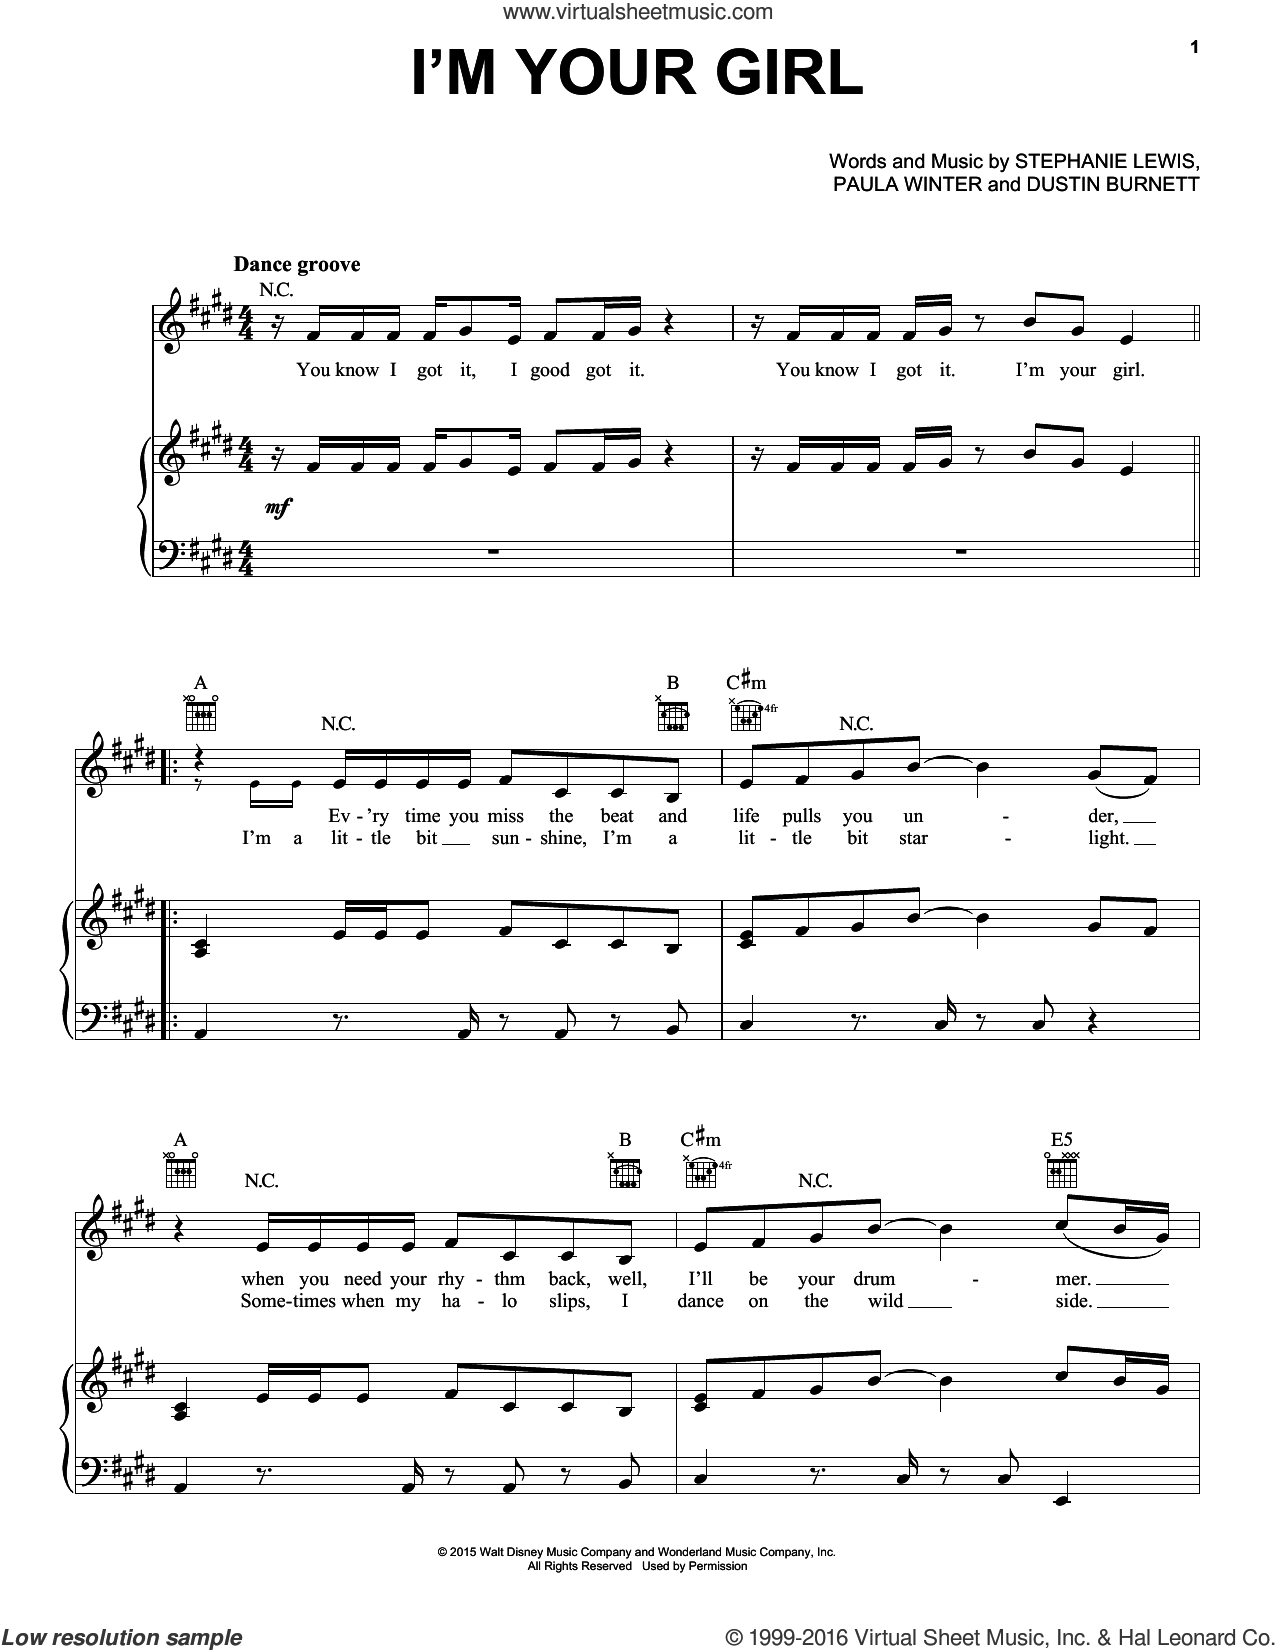 I'm Your Girl (from Disney's Descendants) sheet music for voice, piano or guitar by Felicia Barton, Dustin Burnett, Paula Winger and Stephanie Lewis, intermediate skill level